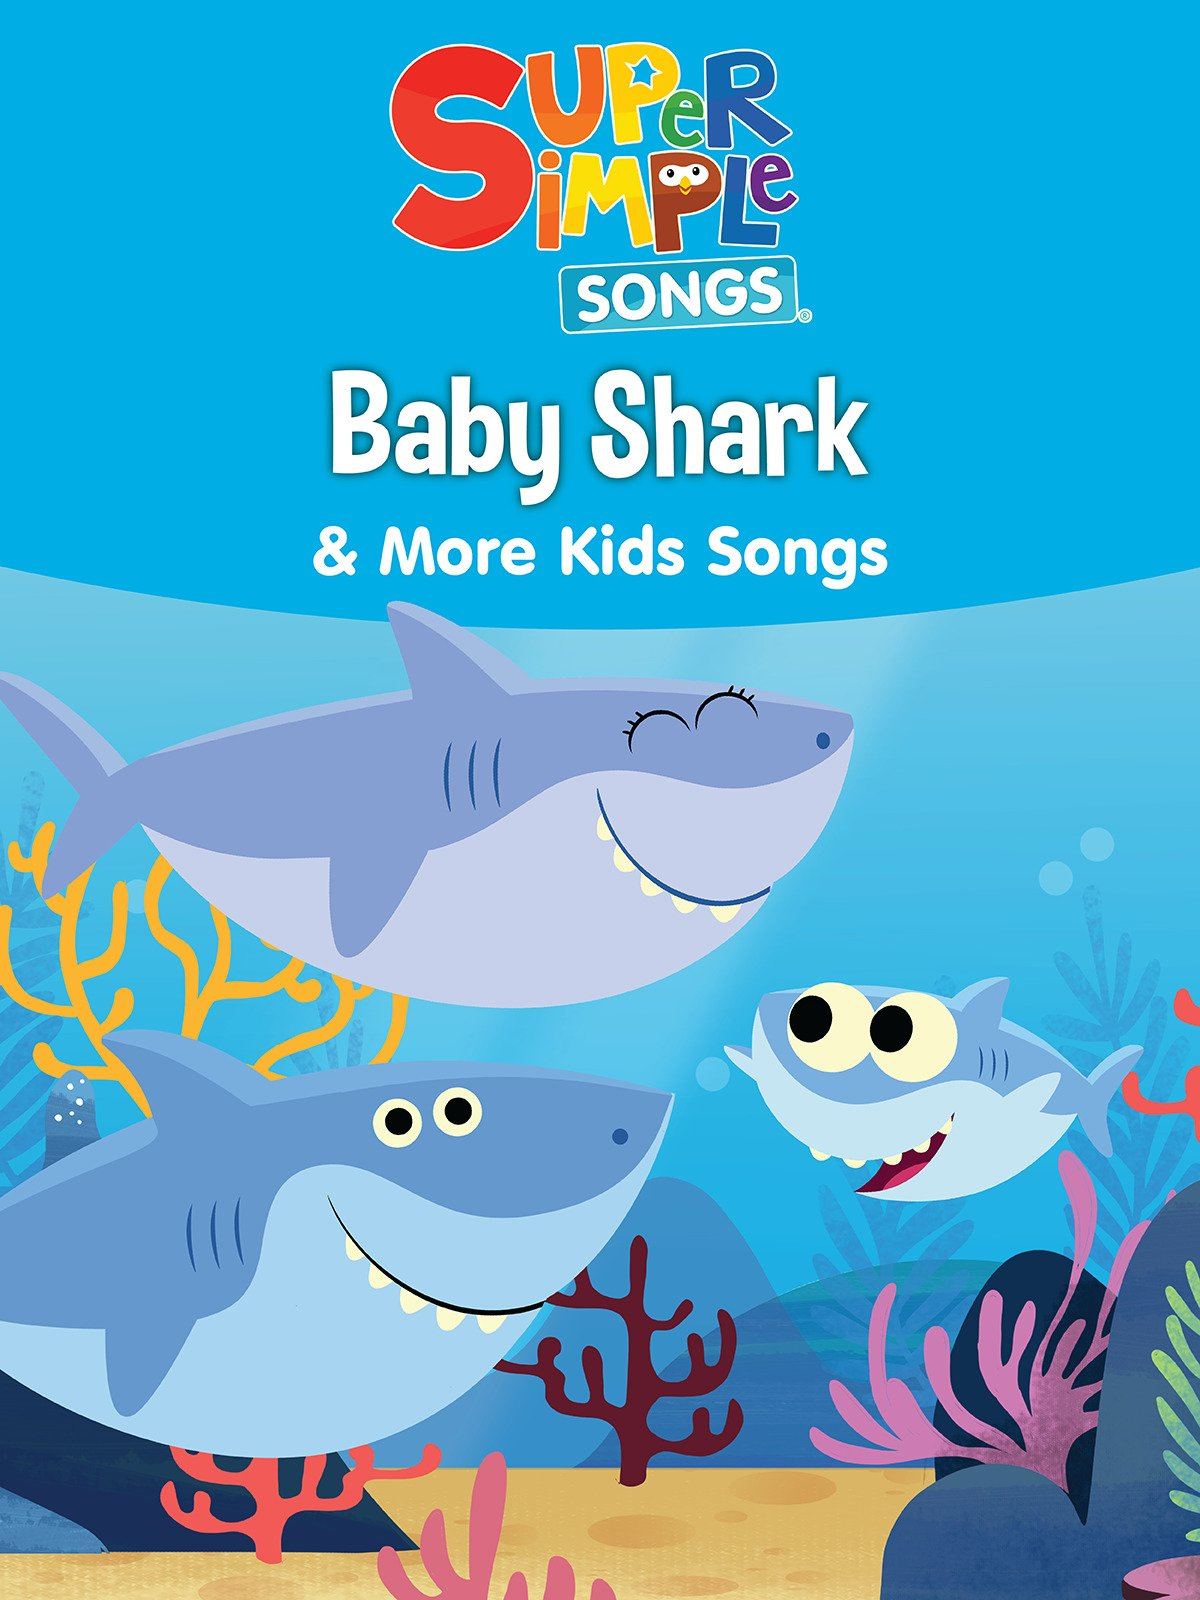 Amazon com: Baby Shark & More Kids Songs - Super Simple Songs: Super